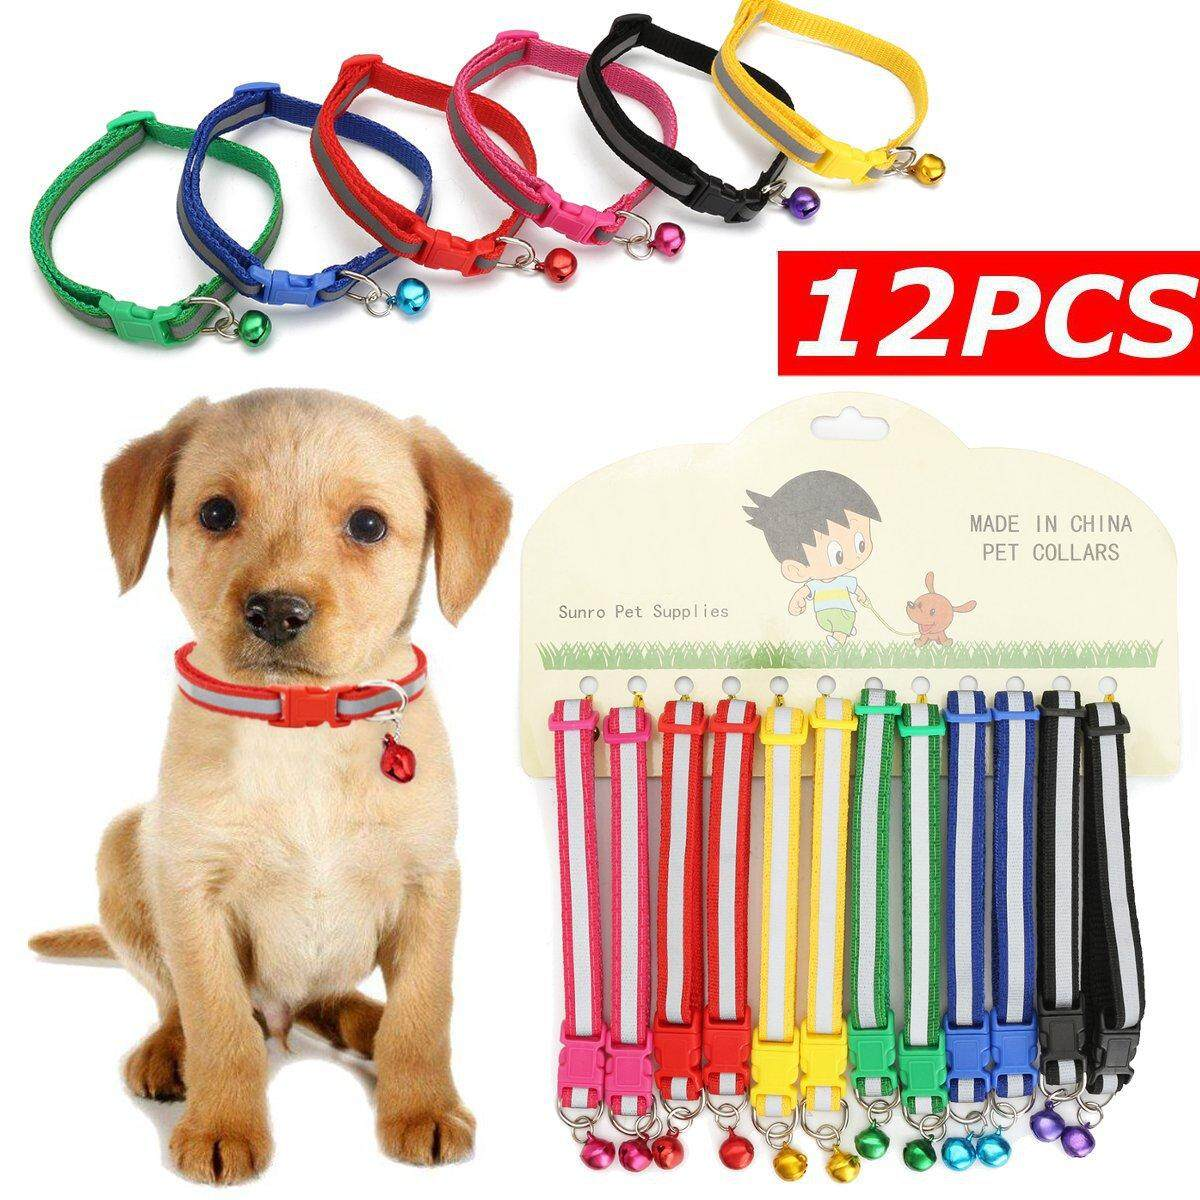 12pcs Cat Dog Puppy Collars Reflective Pet Collars With Bell Gift Wholesale By Glimmer.